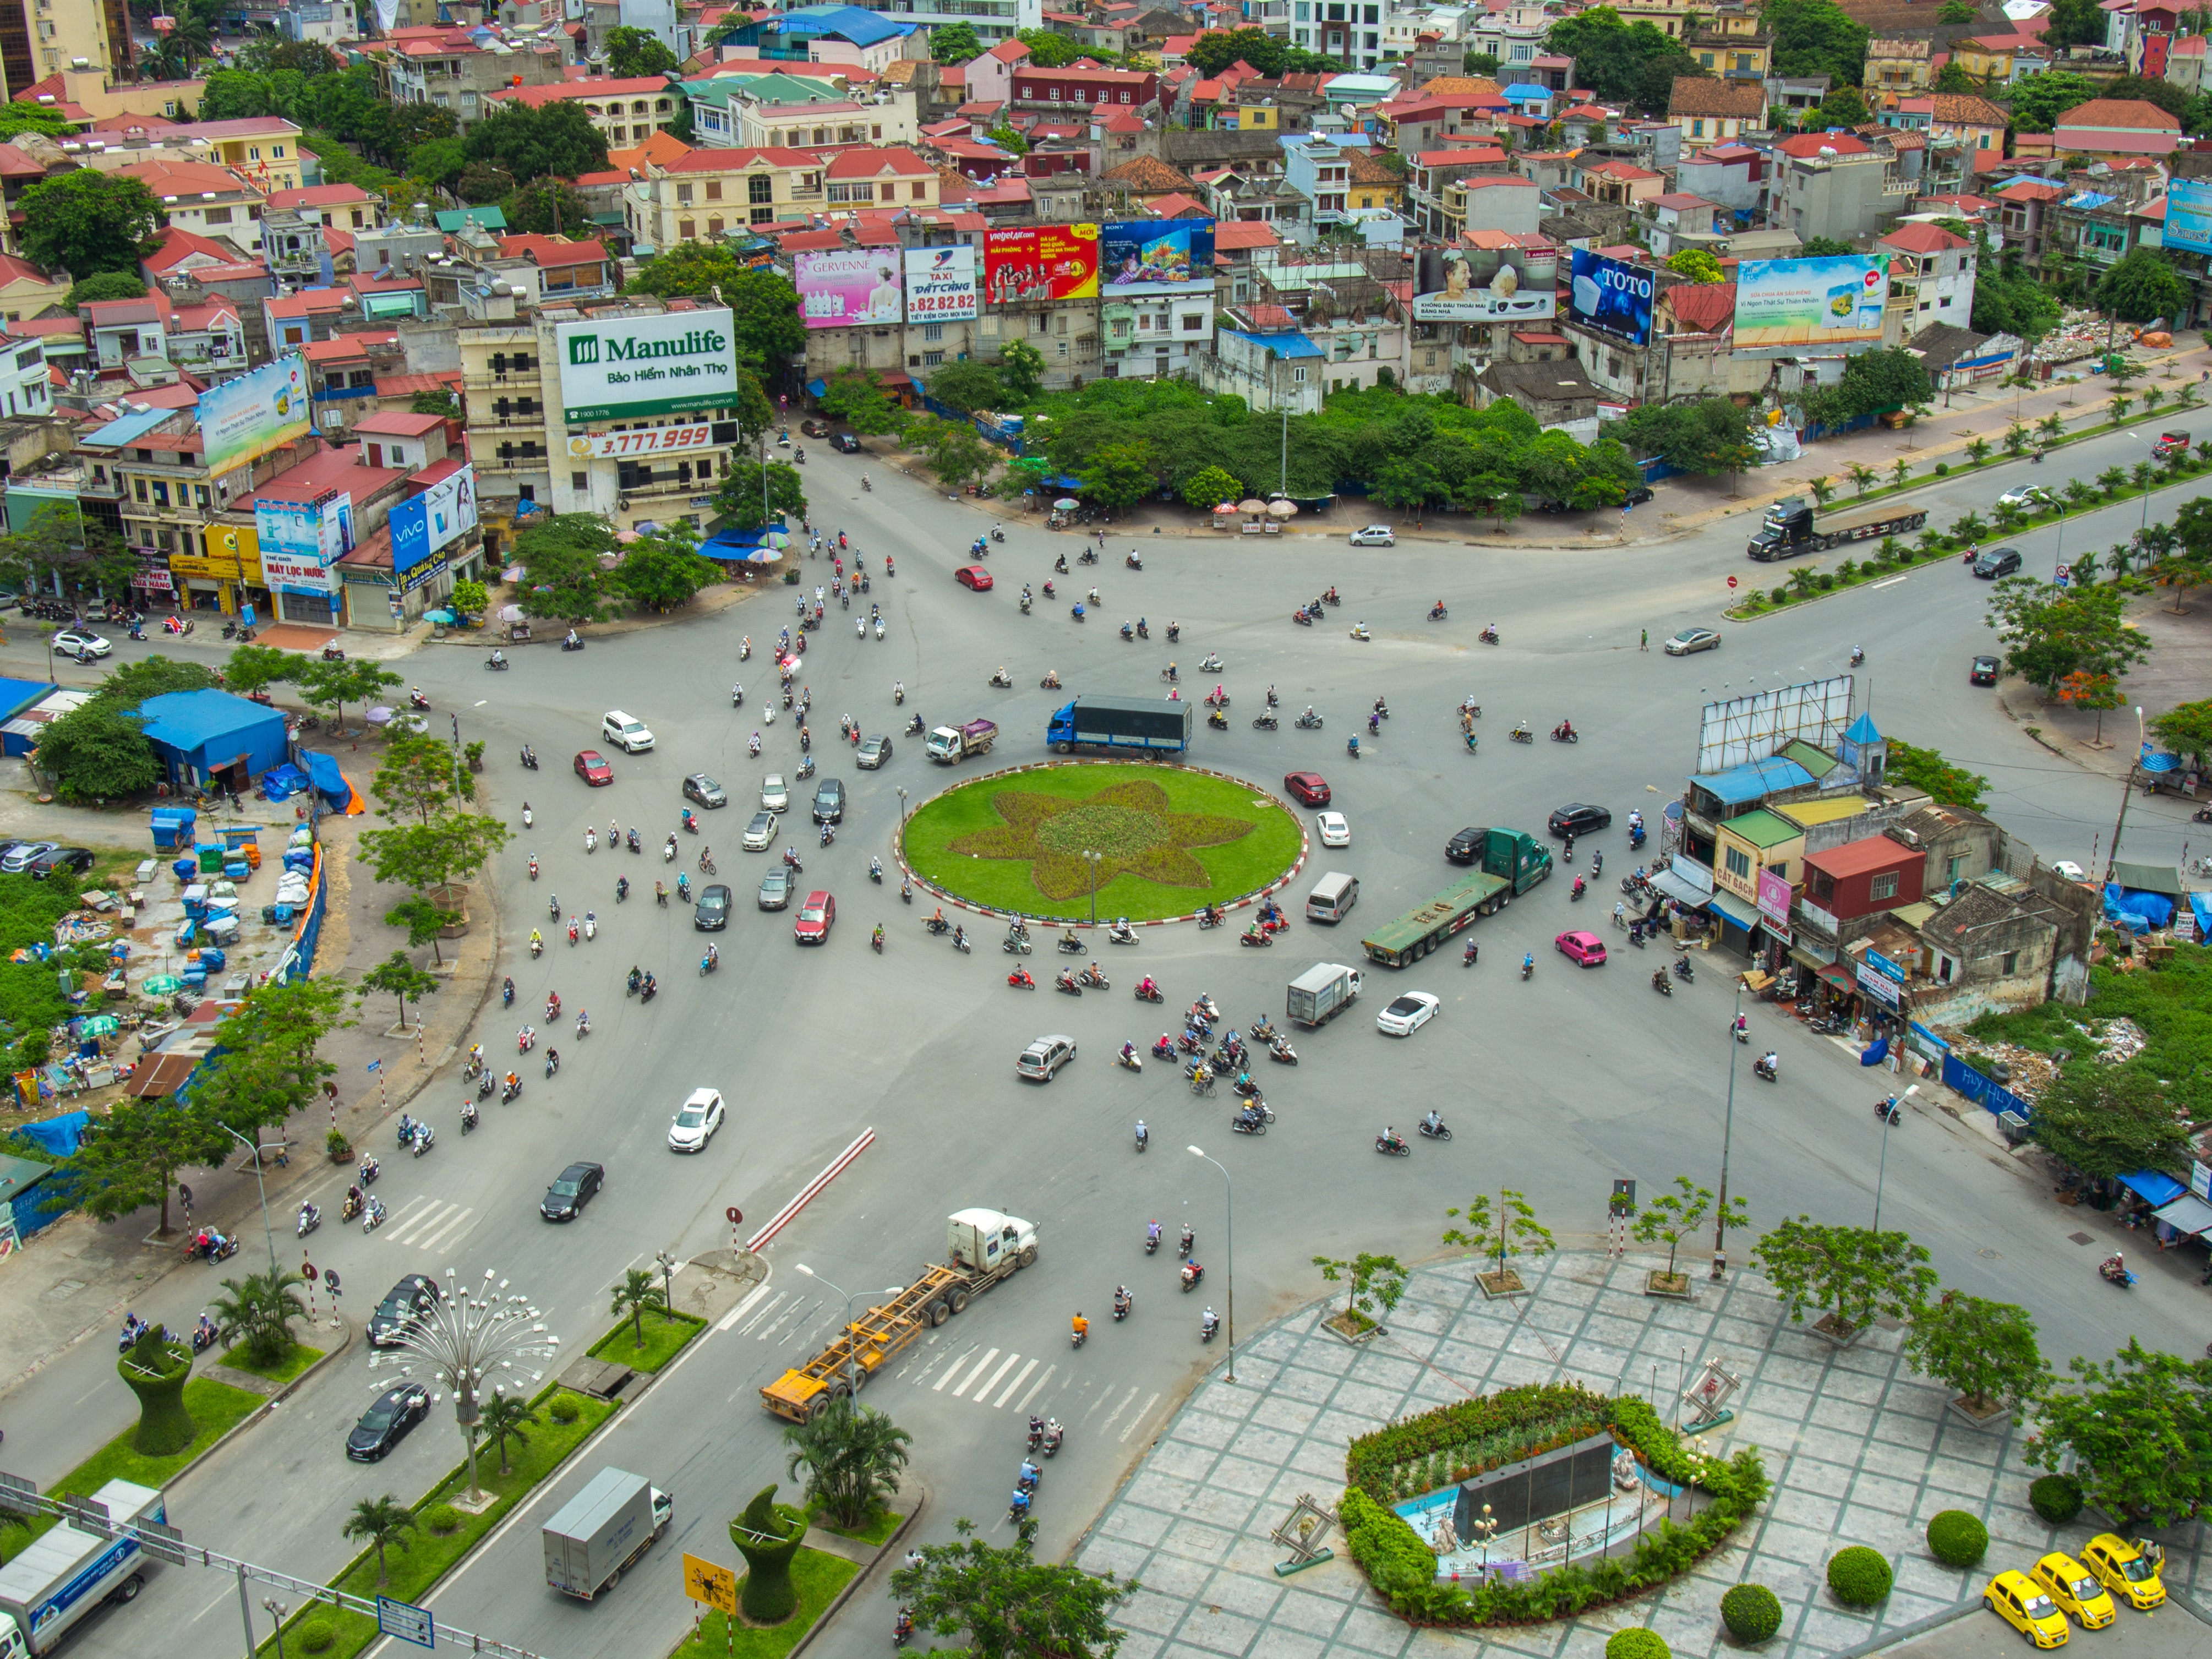 bird's eye view photography of buildings